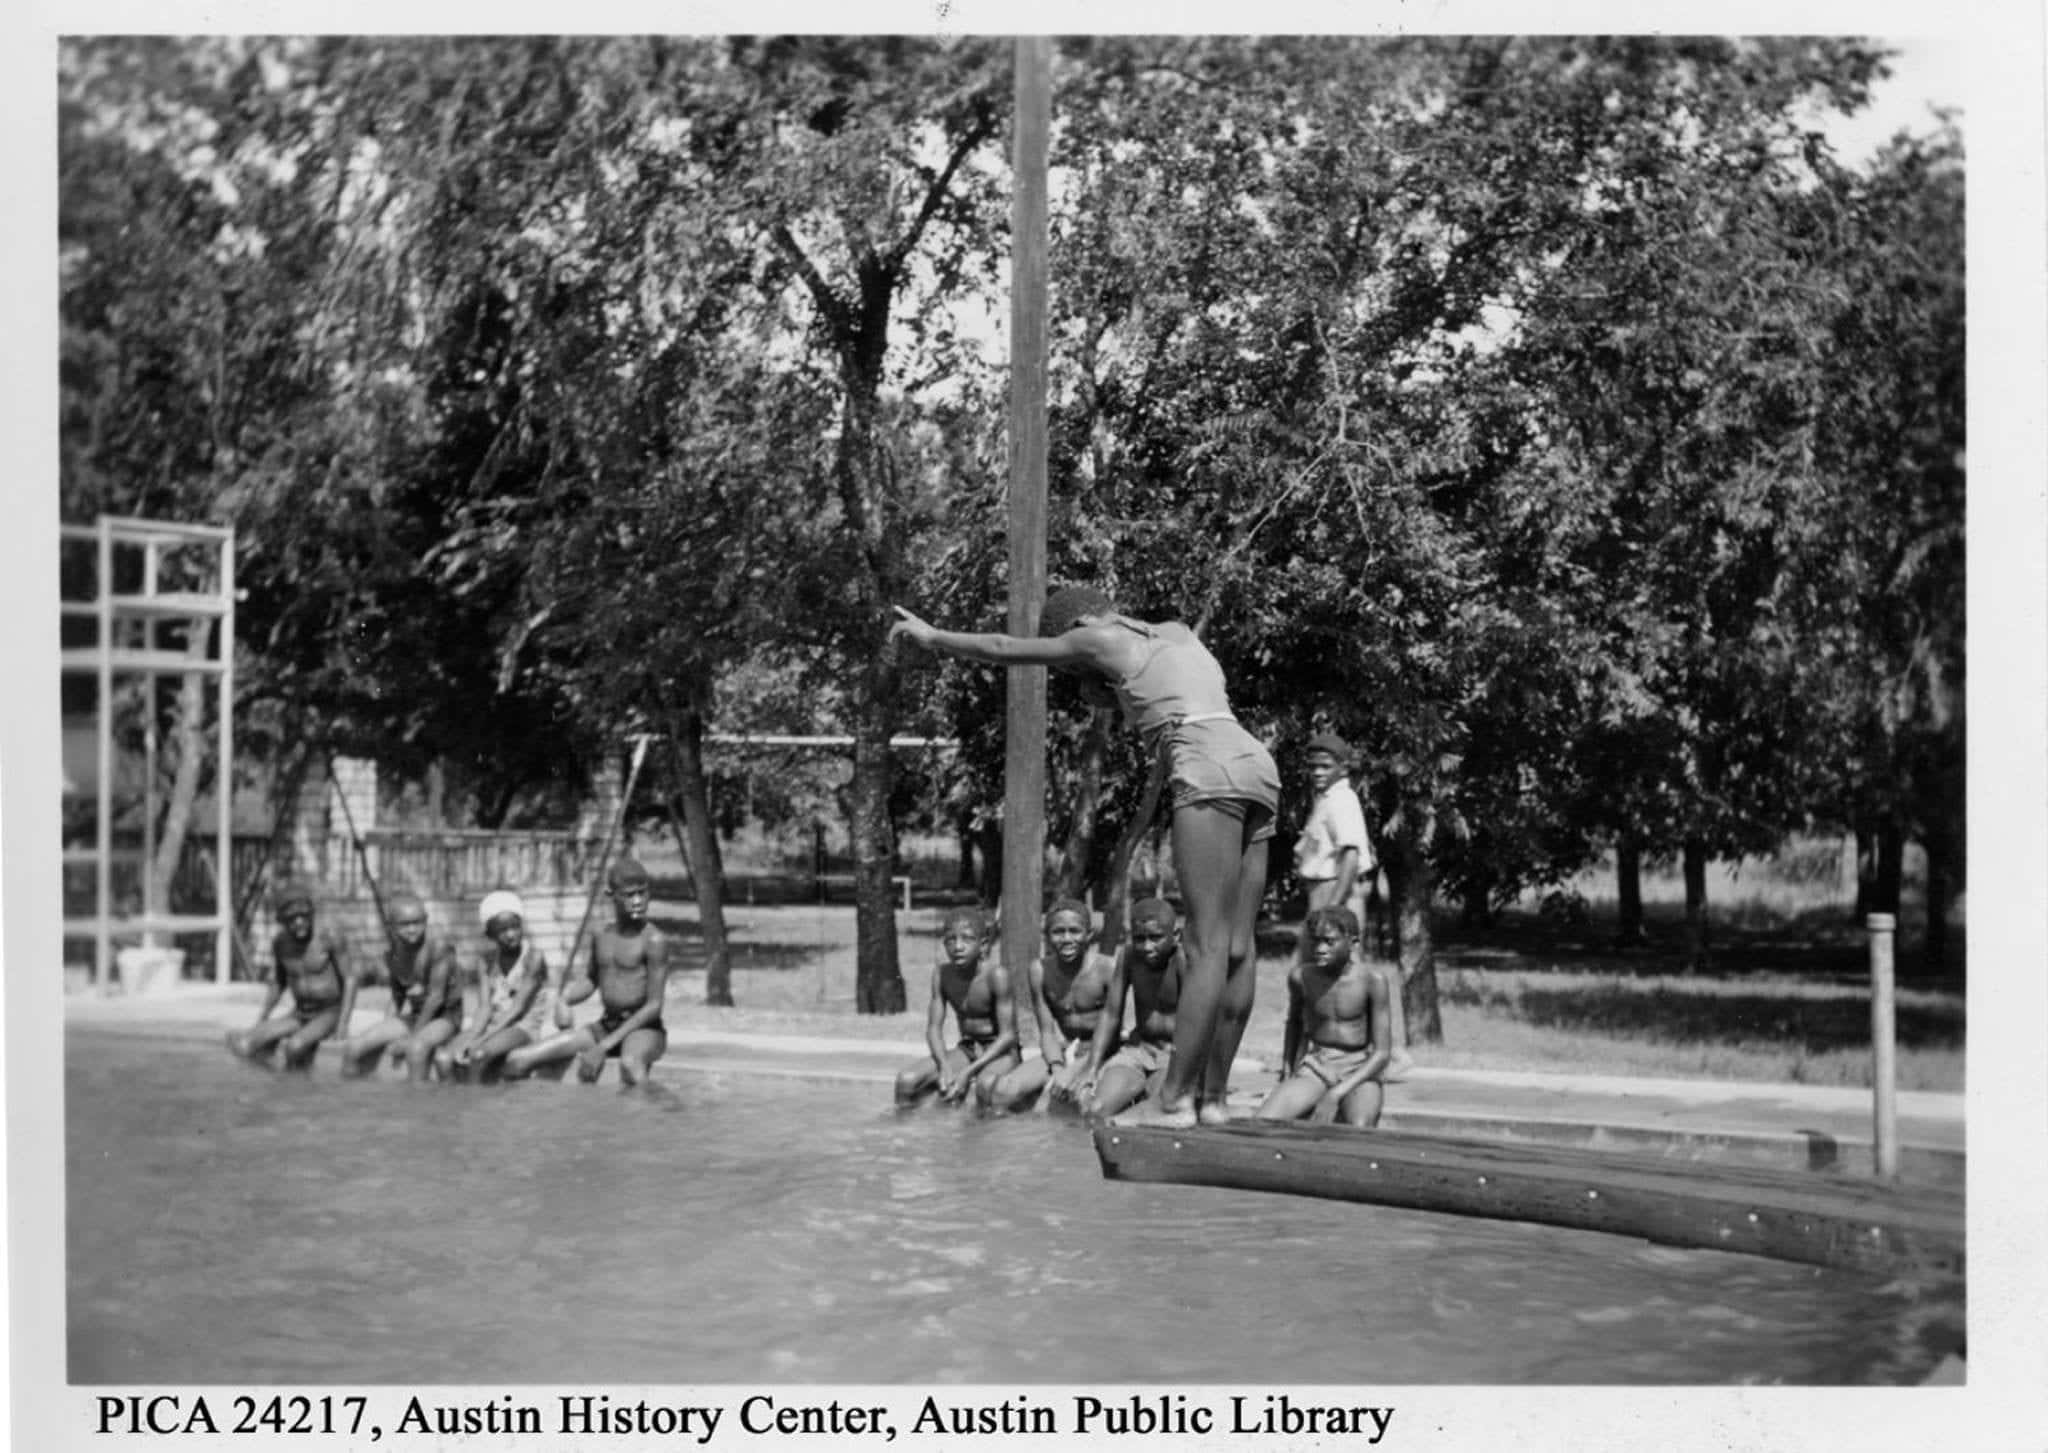 """""""Rosewood Park for Negroes, photograph, September 8, 1938."""" Rosewood Park was established in 1929 as Austin's first public open space set aside for African Americans, a result of the 1928 Koch & Fowler plan that institutionalized racial segregation in Austin. Photo credit: Ellison Photo Service, Austin. Austin History Center, Austin Public Library."""